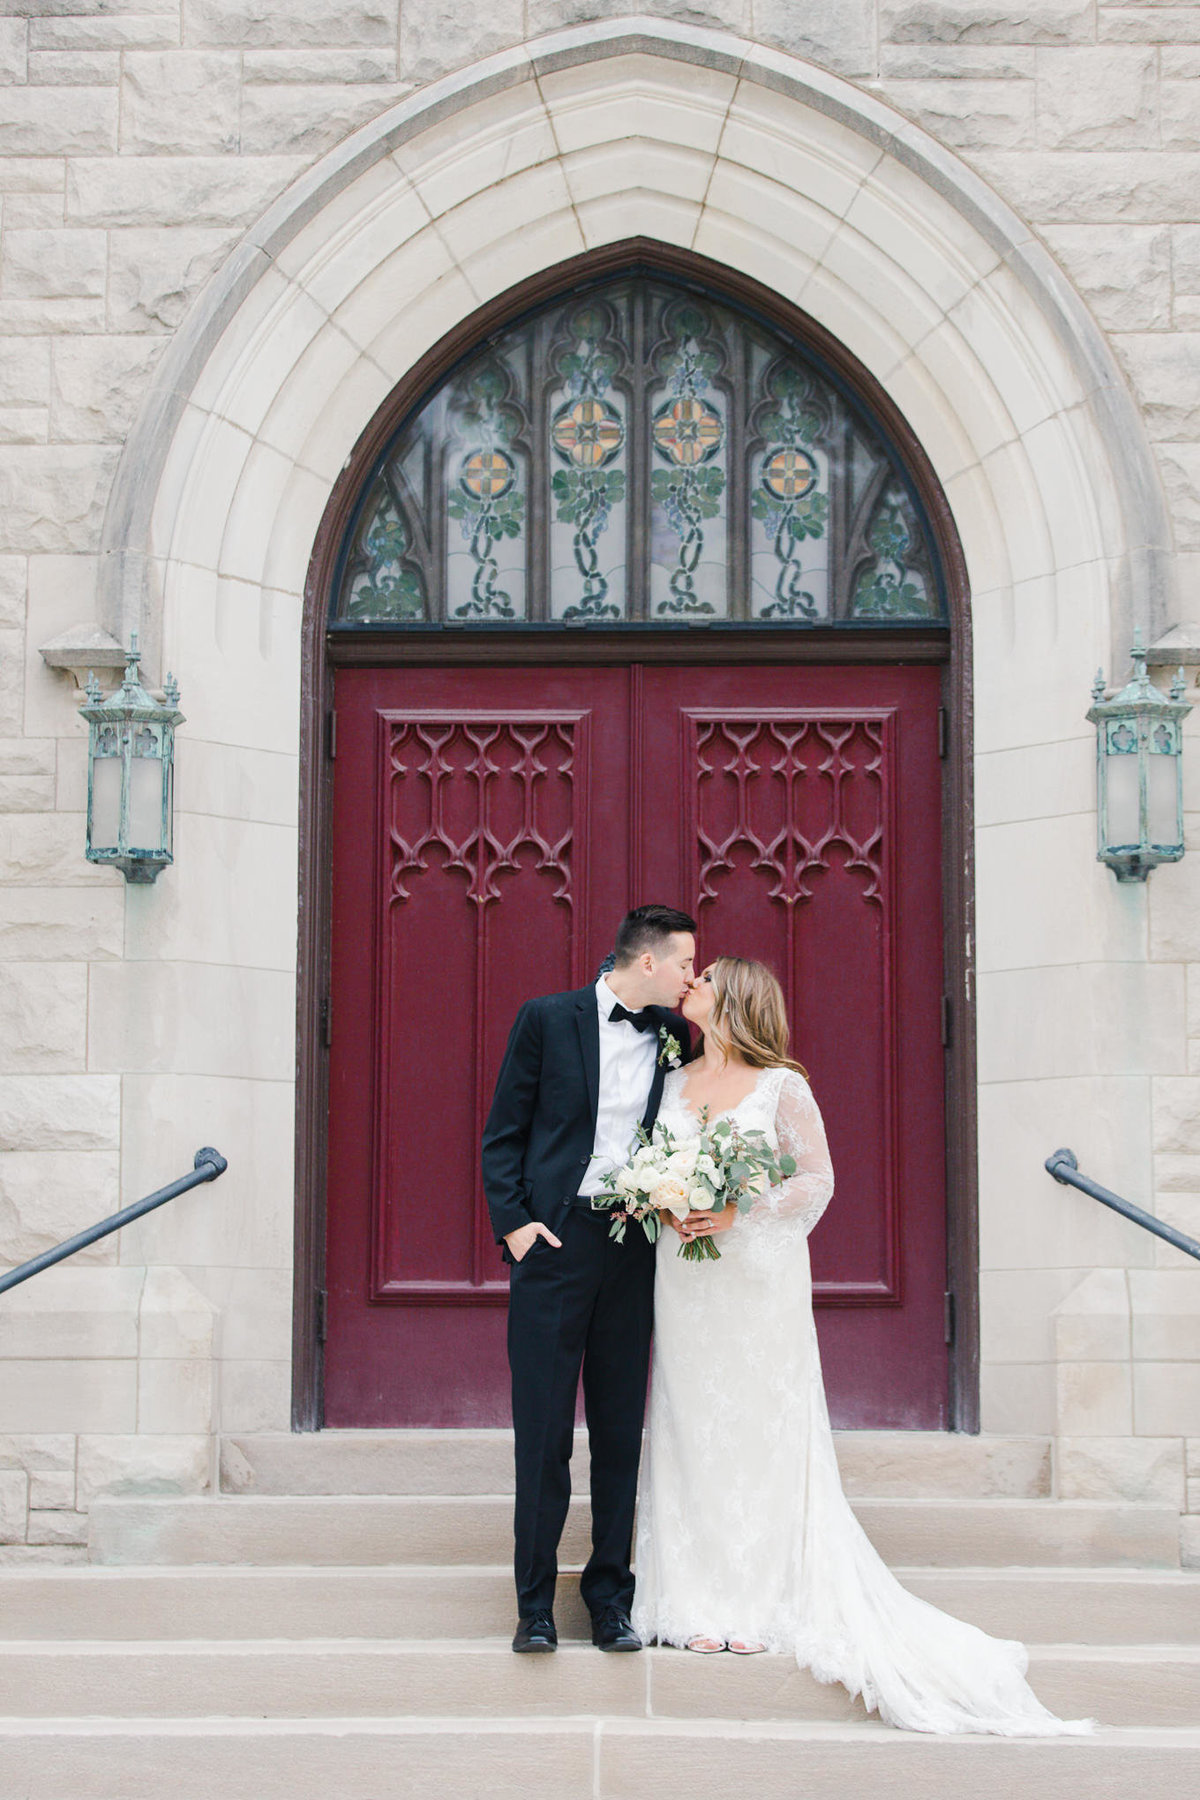 Erika-Taphorn-Photography-Peoria-Illinois-Wedding-Photographer-95